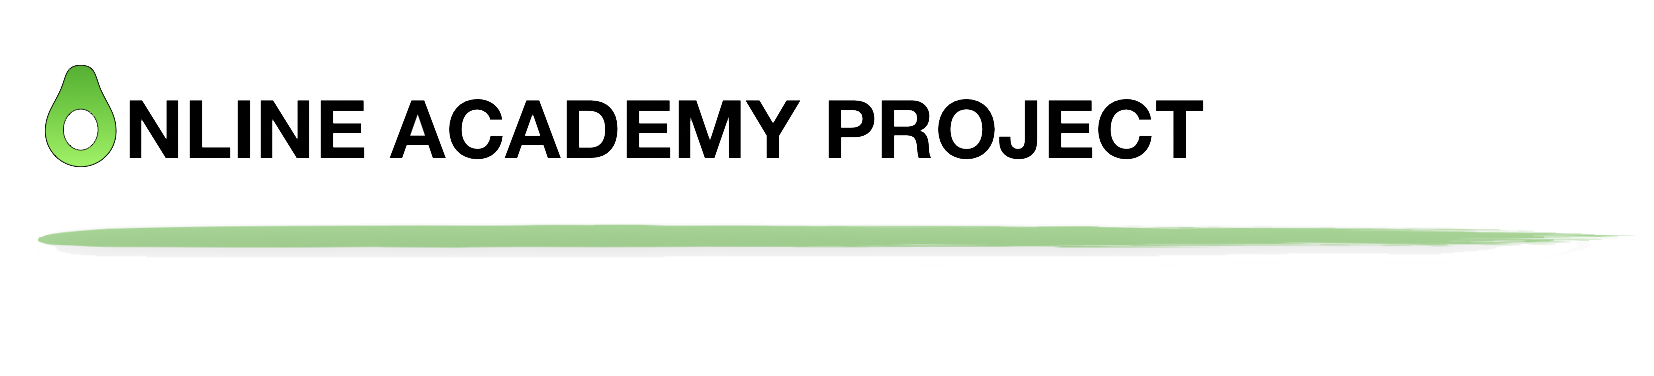 The Online Academy Project